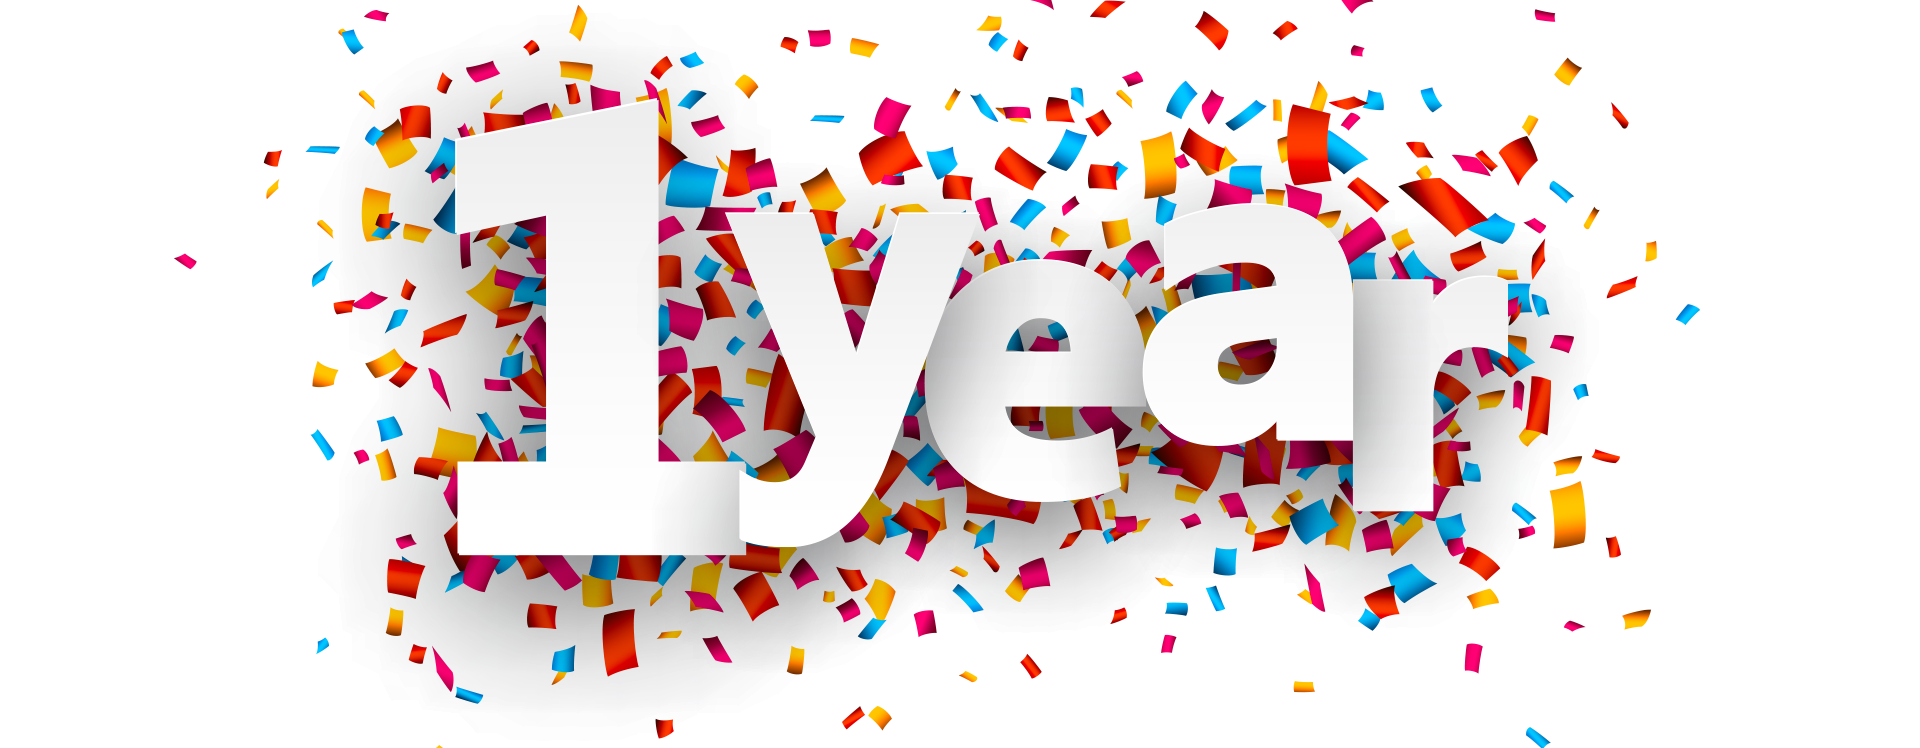 One Year Anniversary PNG - 167877